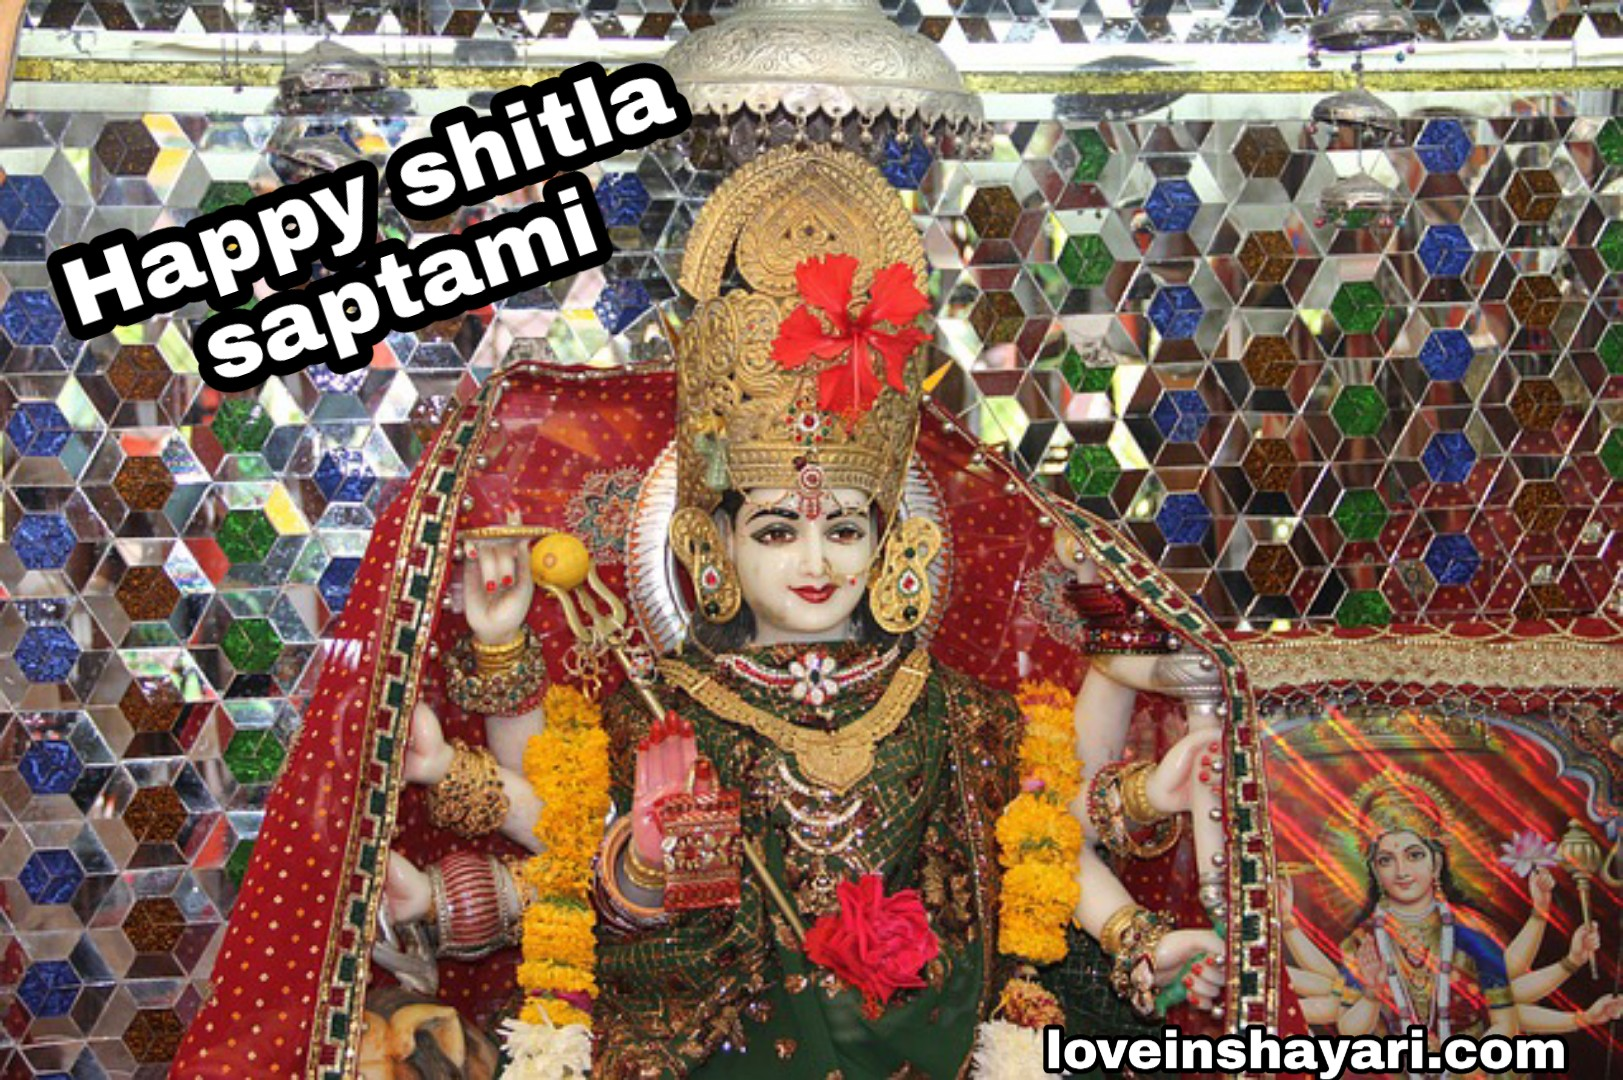 Photo of Shitla saptami wishes 2020